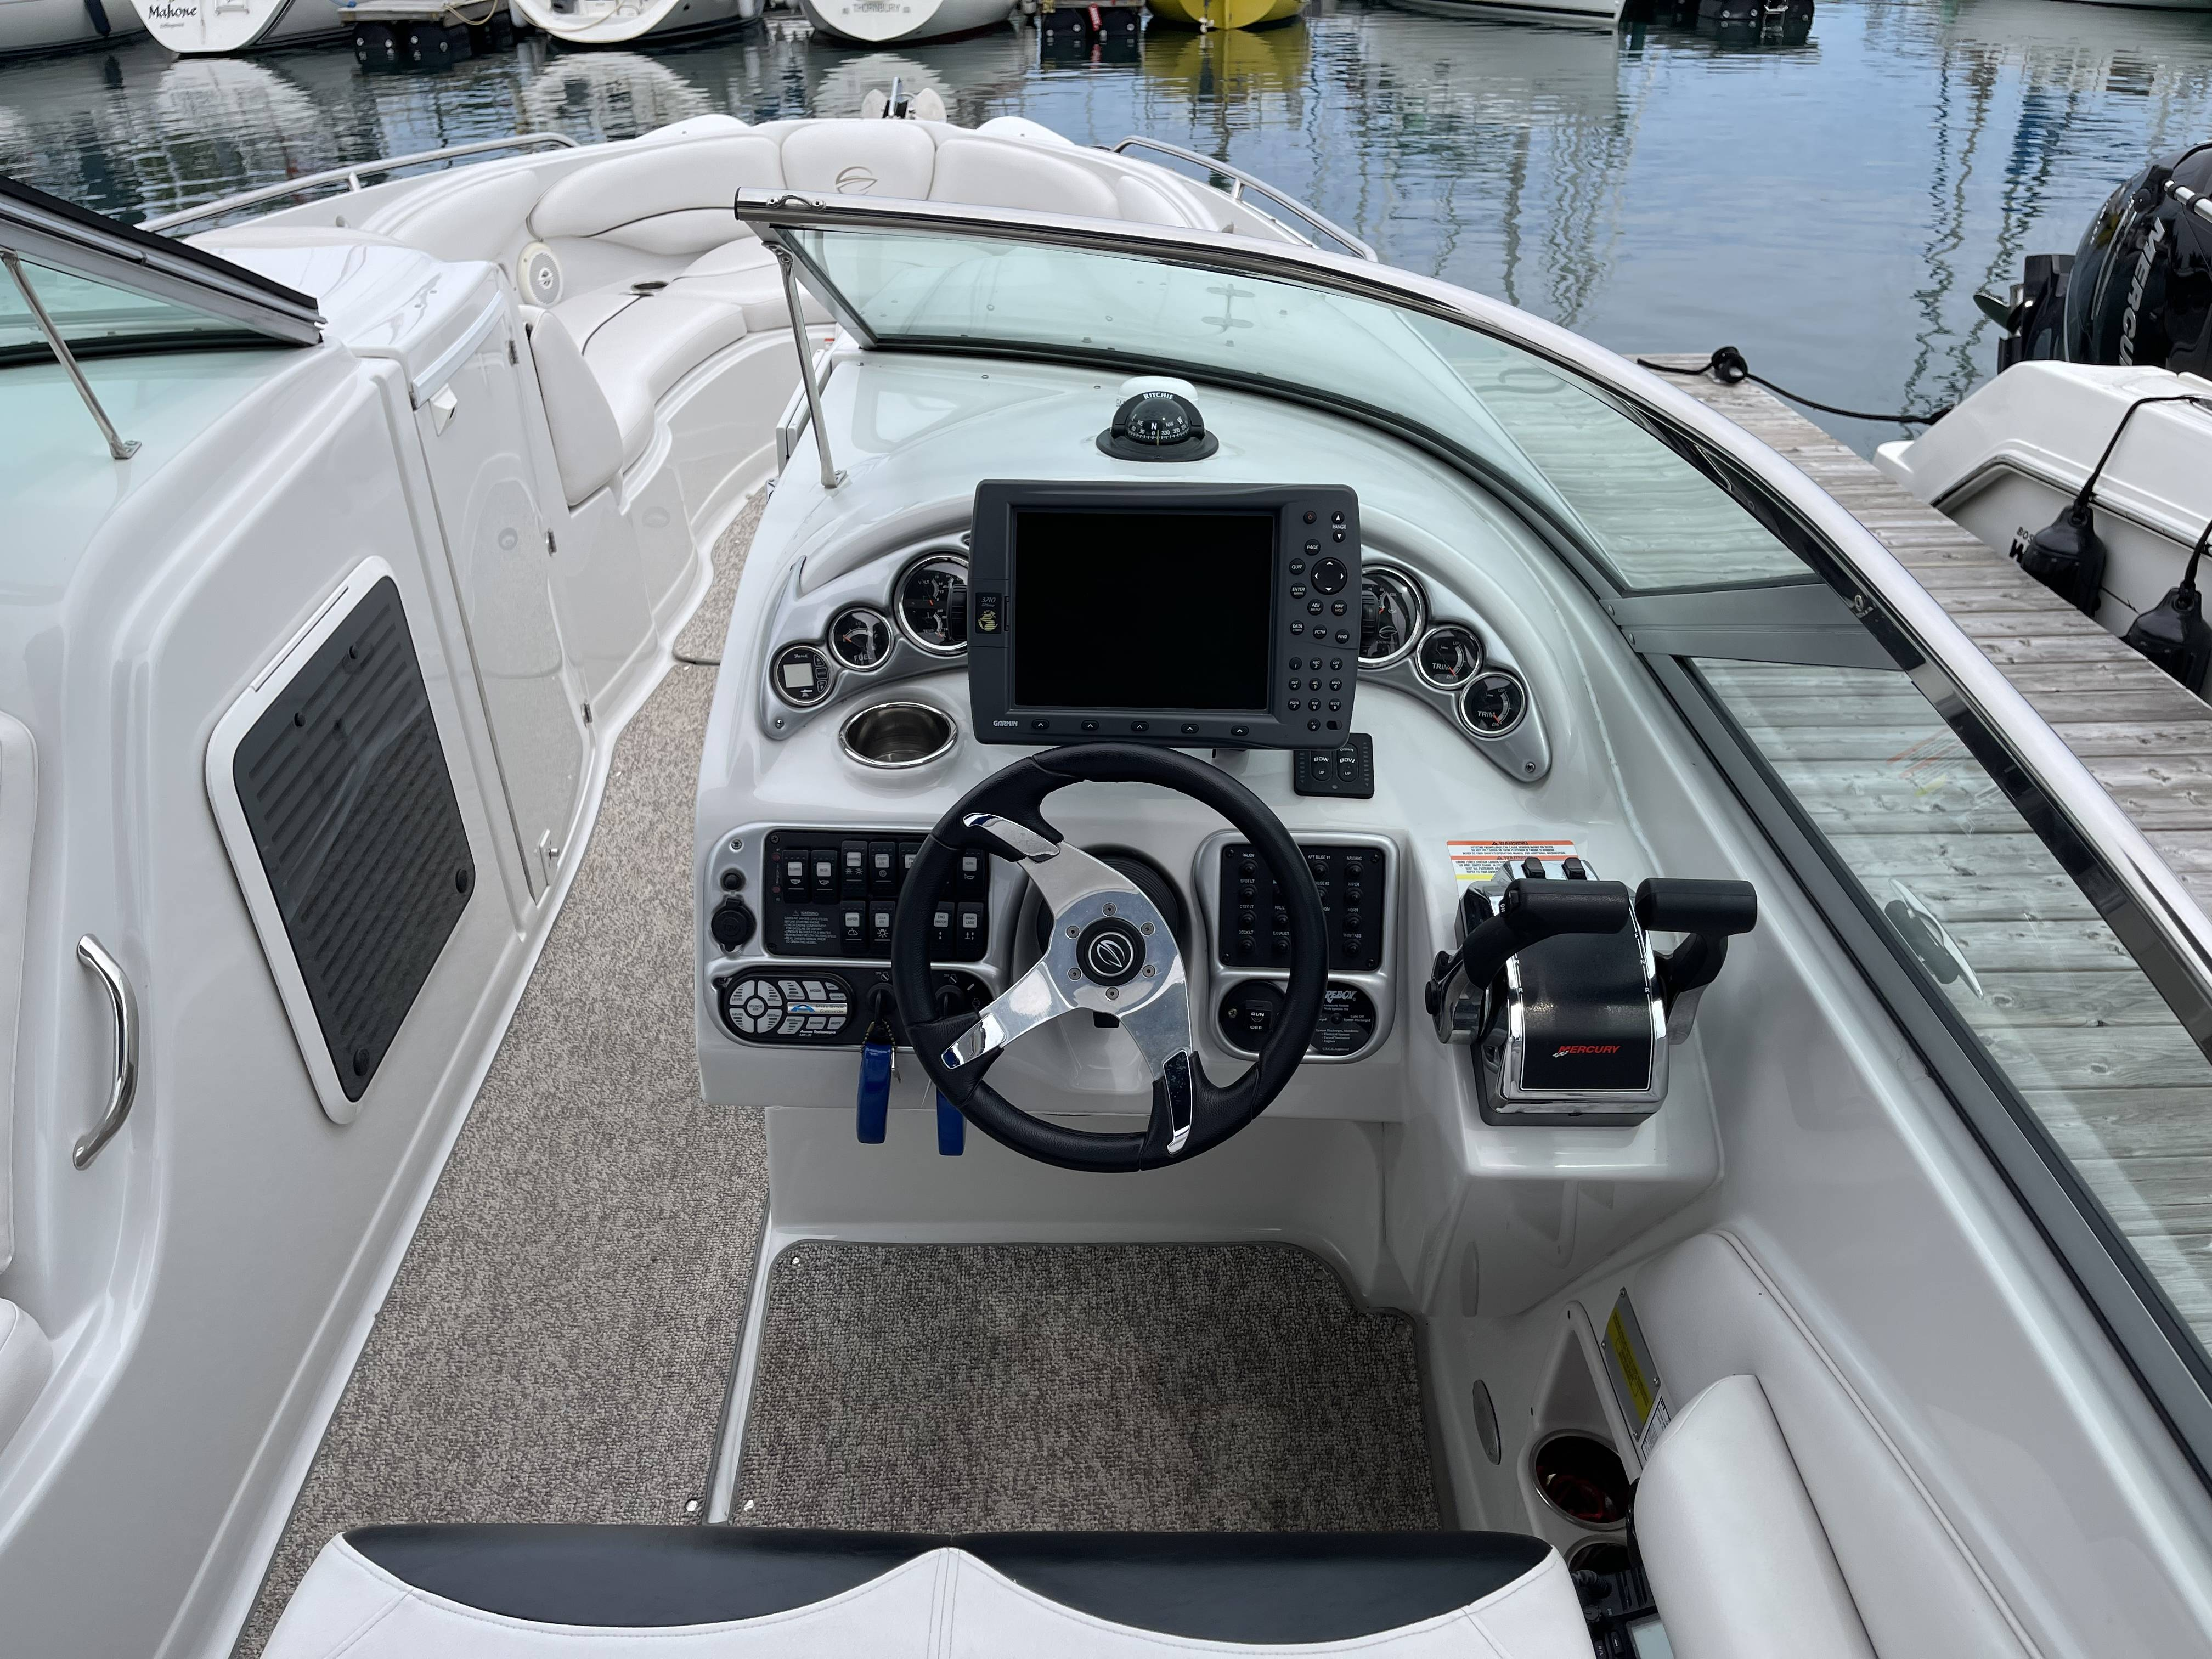 2011 Crownline boat for sale, model of the boat is 320 LS & Image # 20 of 55